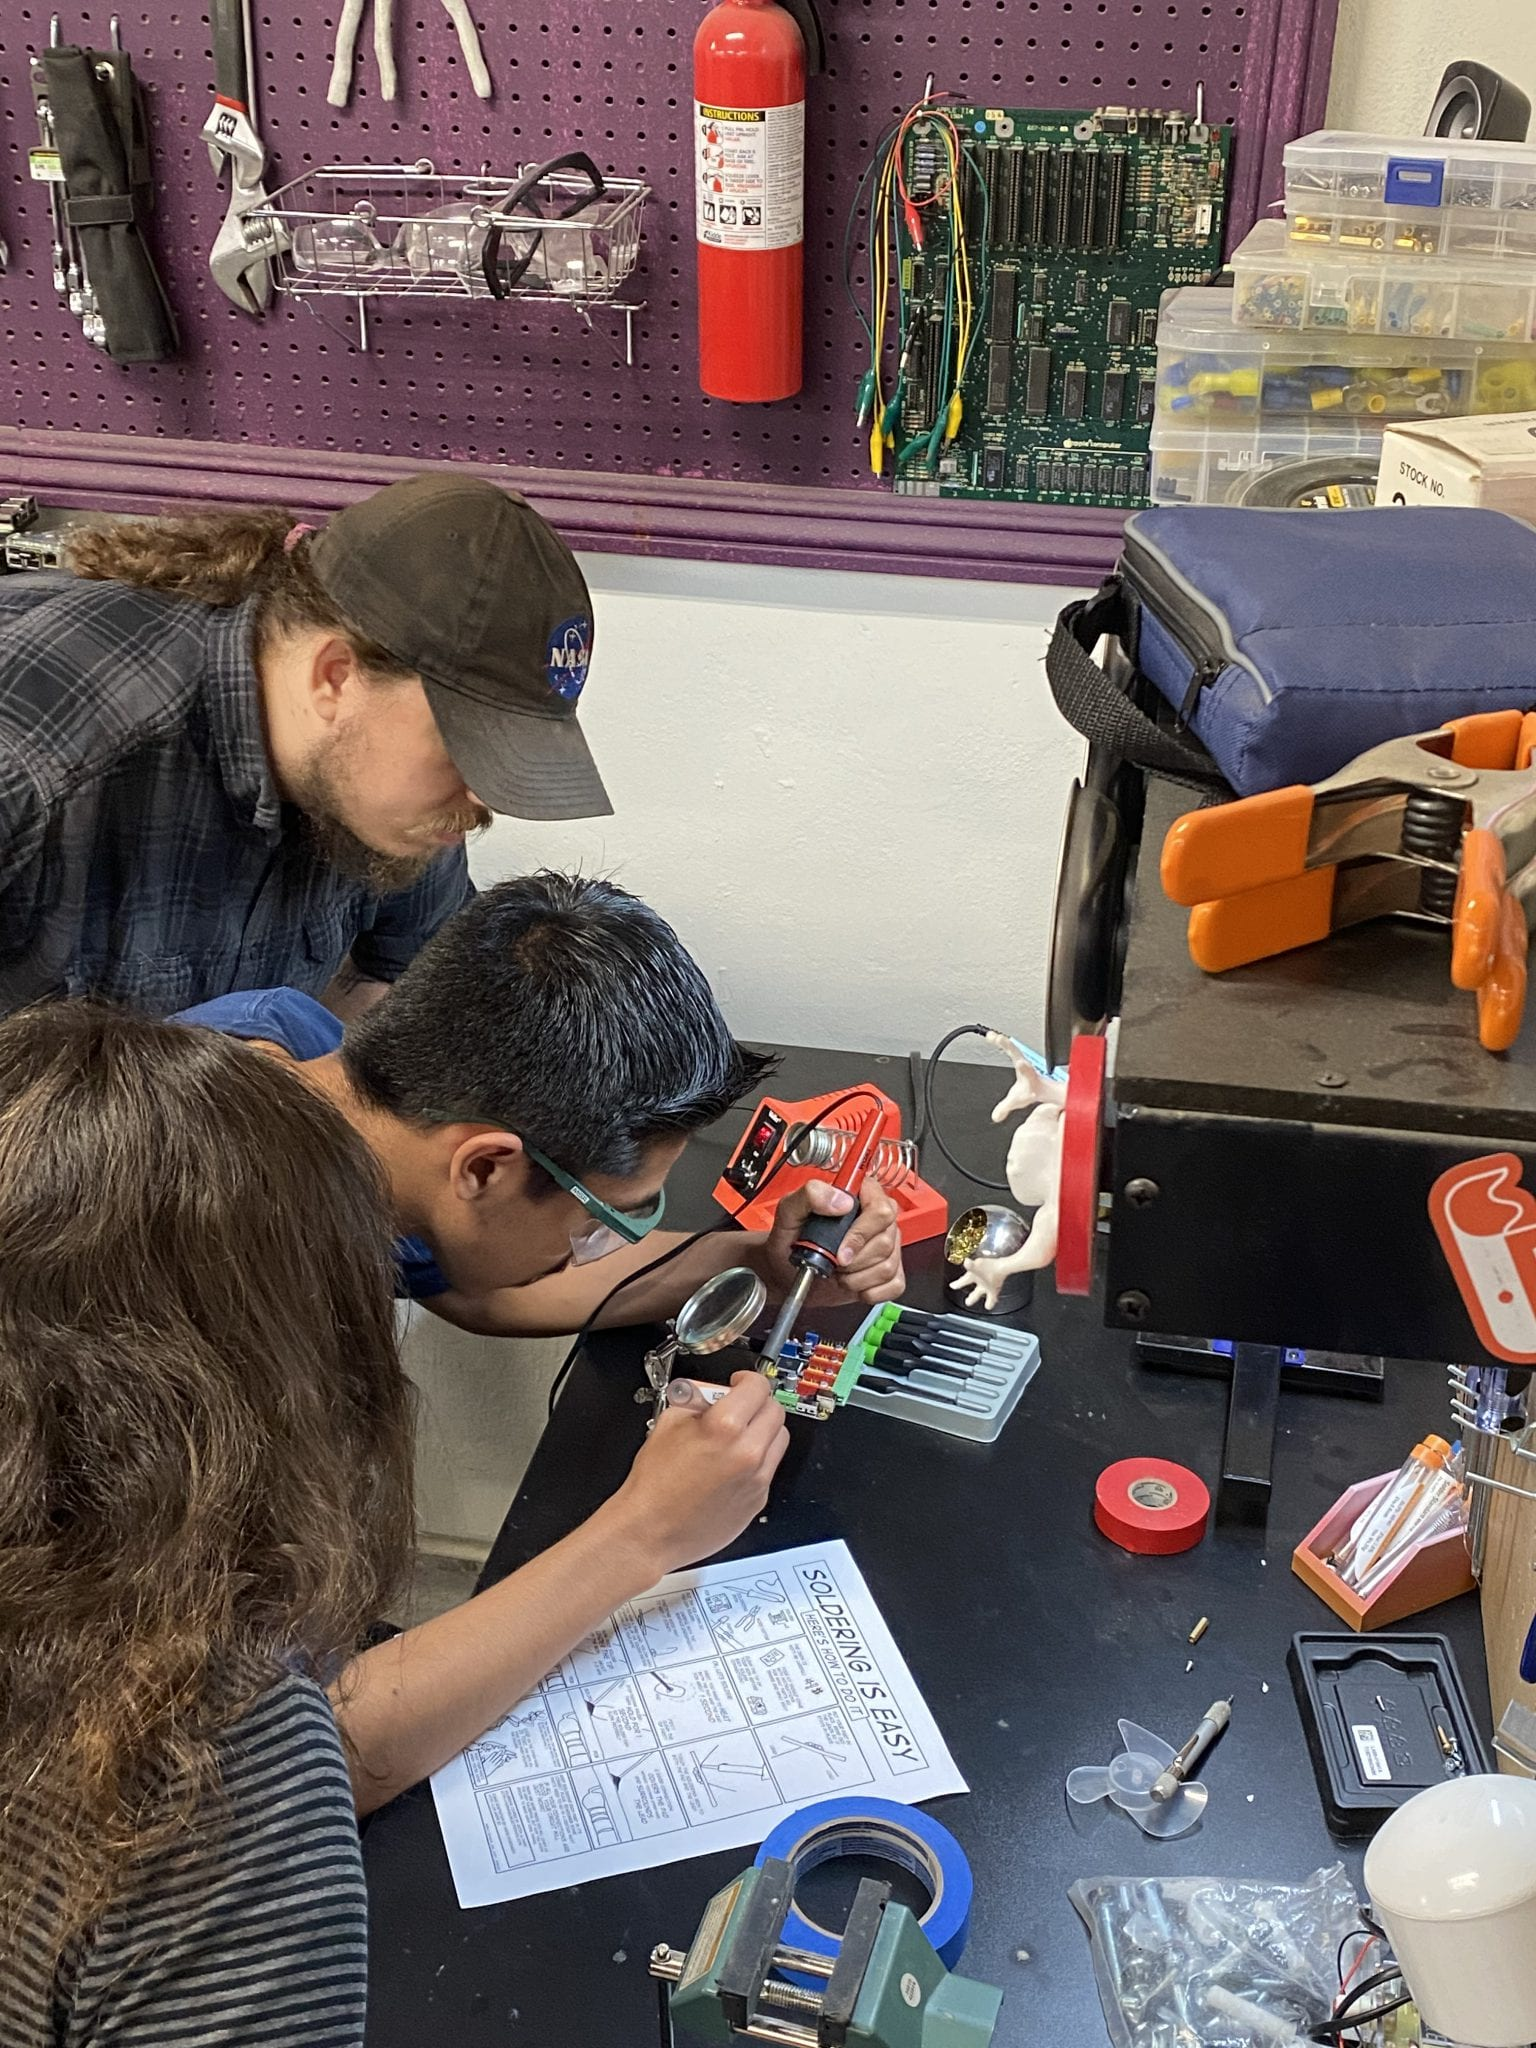 Soldering at Root Access